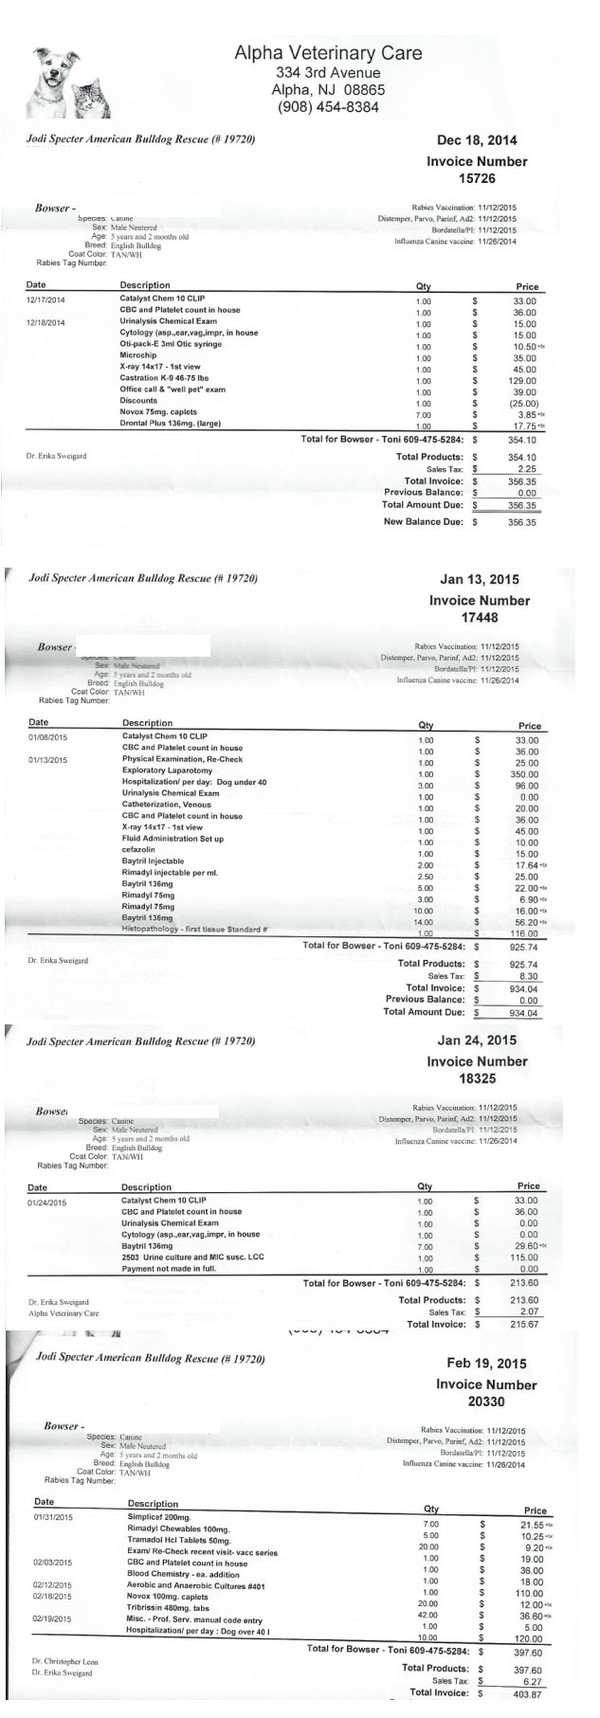 Some of Bowser's Vet Bills